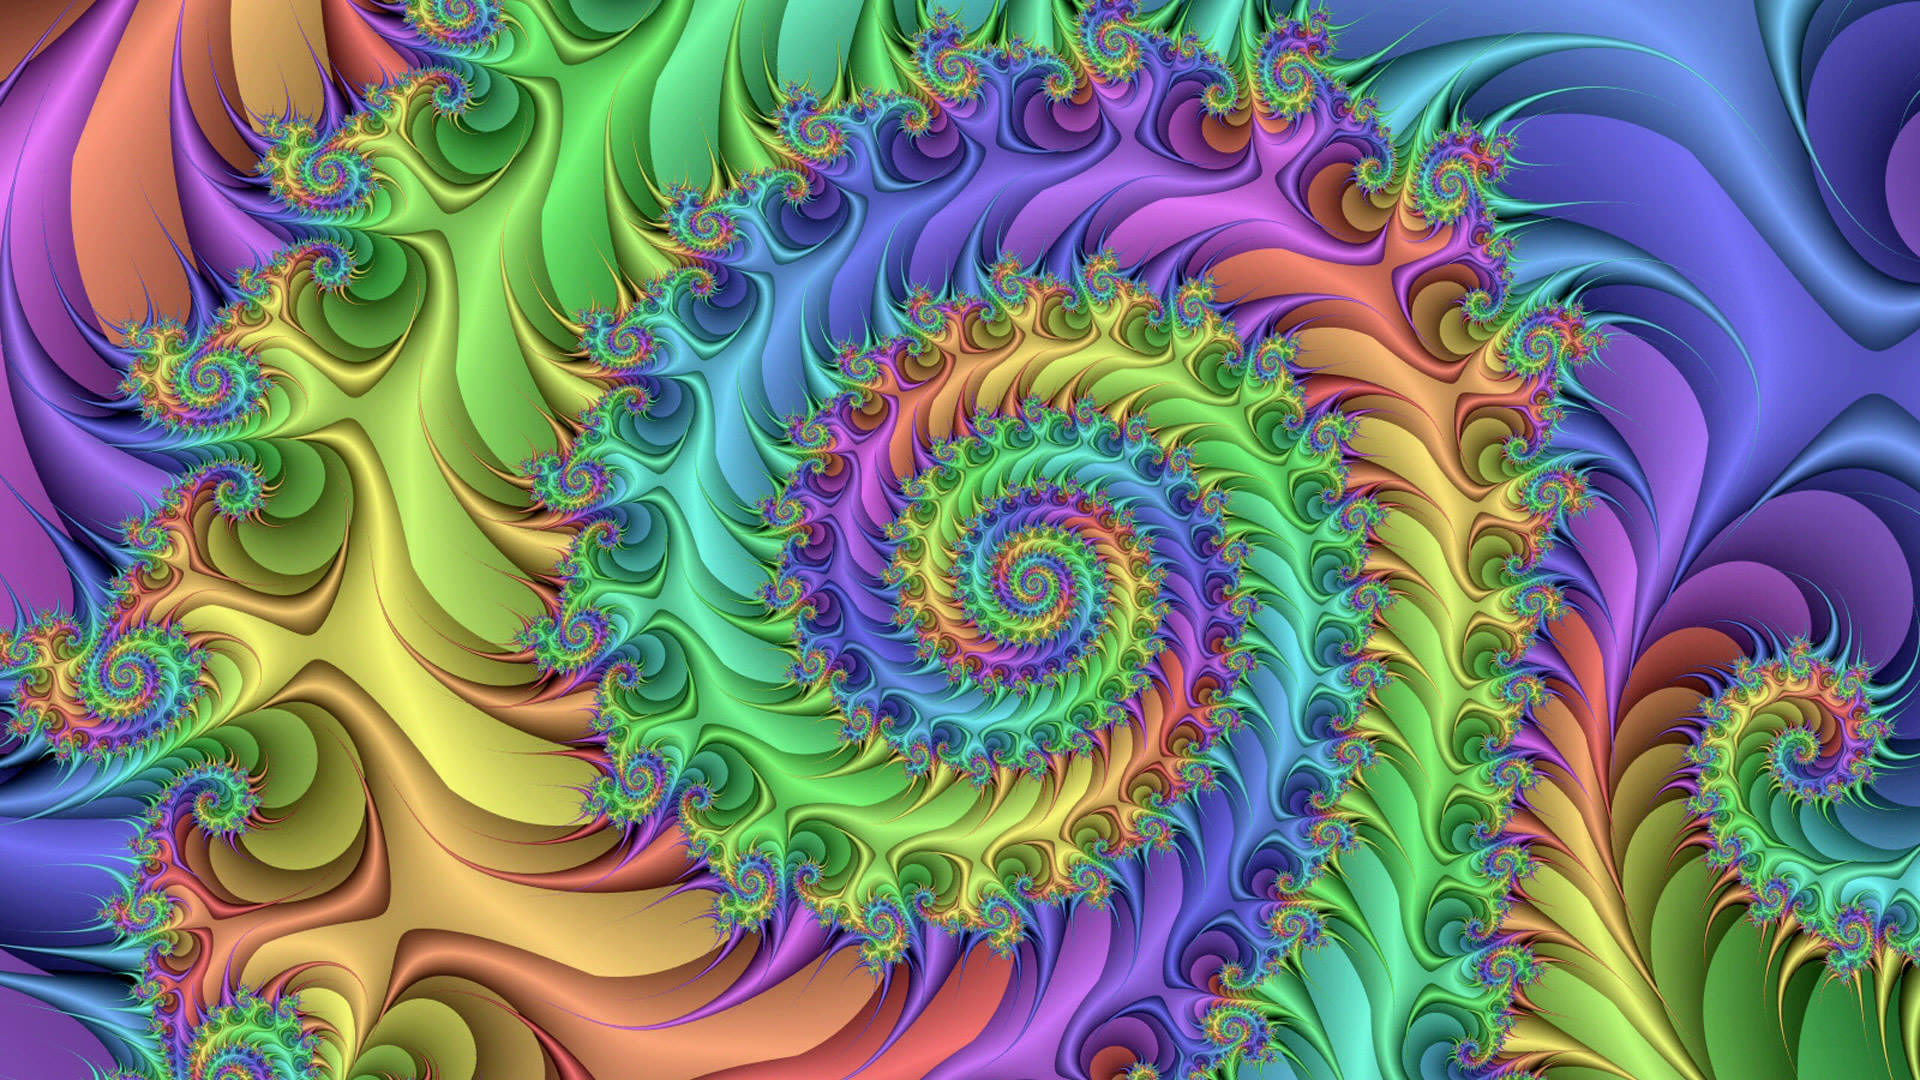 wallpapers wallpaper tripy trippy fractal 1920x1080